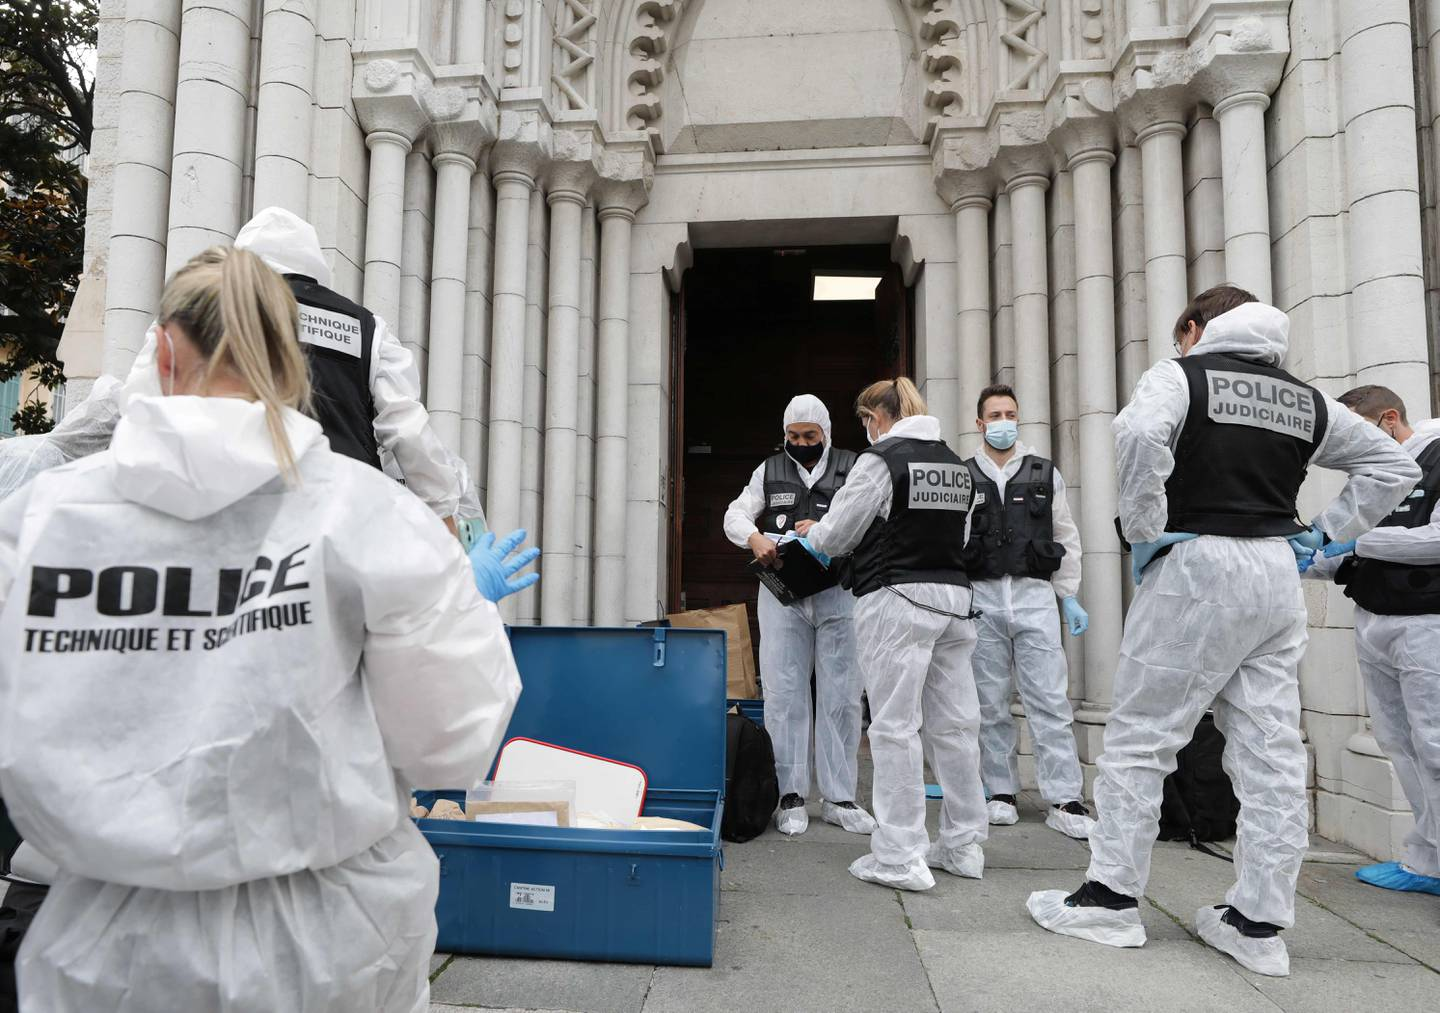 """French forensics officers operate outside the Basilica of Notre-Dame de Nice after a knife attack in Nice on October 29, 2020. - France's national anti-terror prosecutors said Thursday they have opened a murder inquiry after a man killed three people at a basilica in central Nice and wounded several others. The city's mayor, Christian Estrosi, told journalists at the scene that the assailant, detained shortly afterwards by police, """"kept repeating 'Allahu Akbar' (God is Greater) even while under medication."""" He added that President Emmanuel Macron would be arriving shortly in Nice. (Photo by ERIC GAILLARD / POOL / AFP)"""